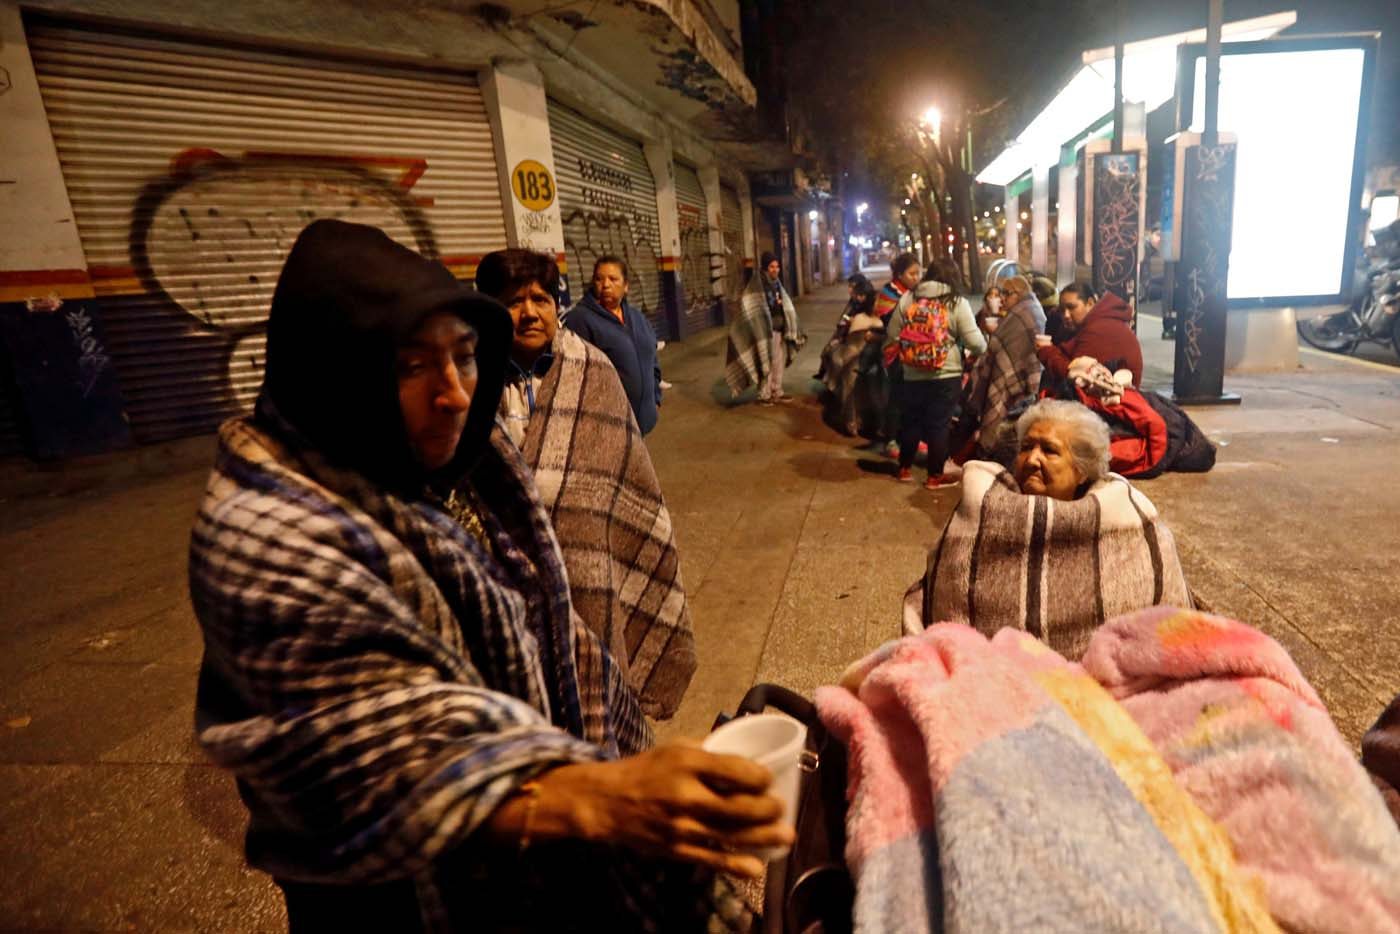 People gather on a street after an earthquake hit Mexico City, Mexico, September 8, 2017. REUTERS/Edgard Garrido